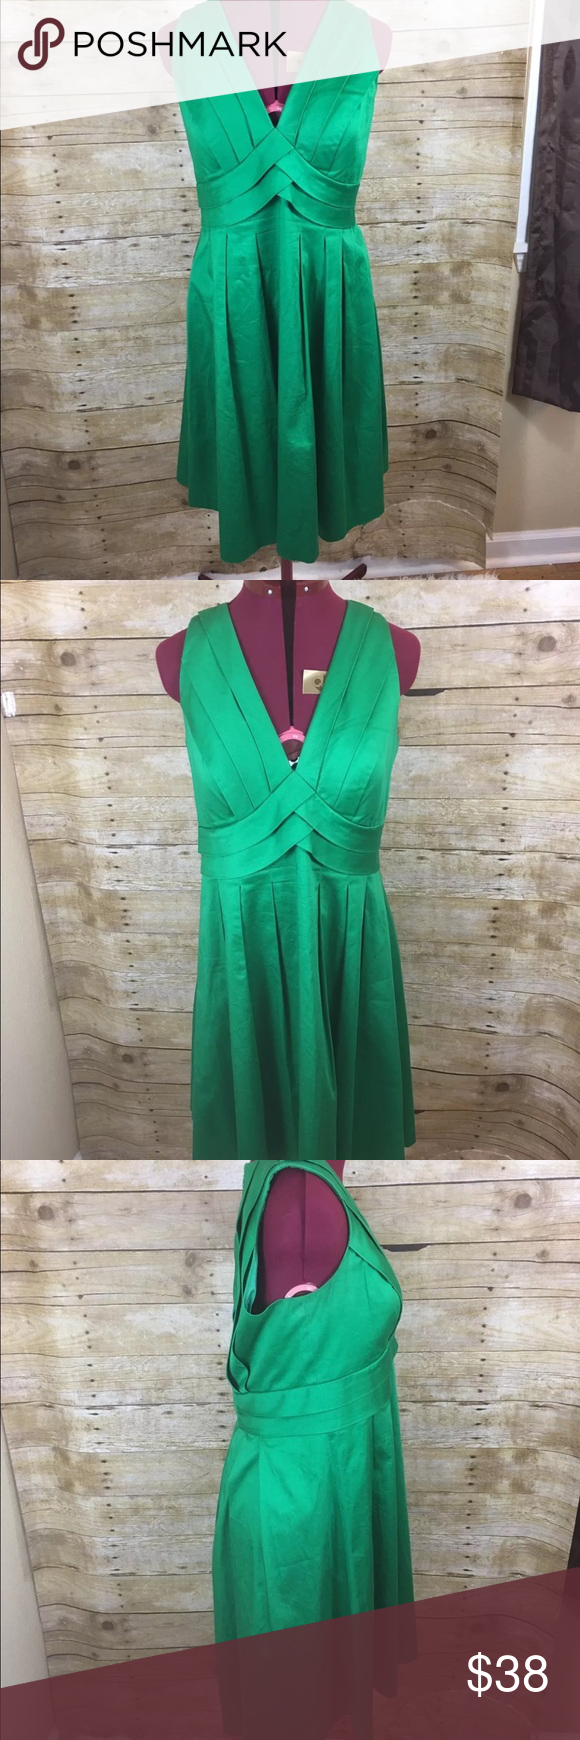 """Calvin Klein emerald green dress Empire waist fit flareThis is a very nice preloved condition Calvin Klein size 6 Emerald Green dress -- this dress is in great condition,  Length: 37"""" Arm to Arm: 16 Waist: 15 Calvin Klein Dresses"""